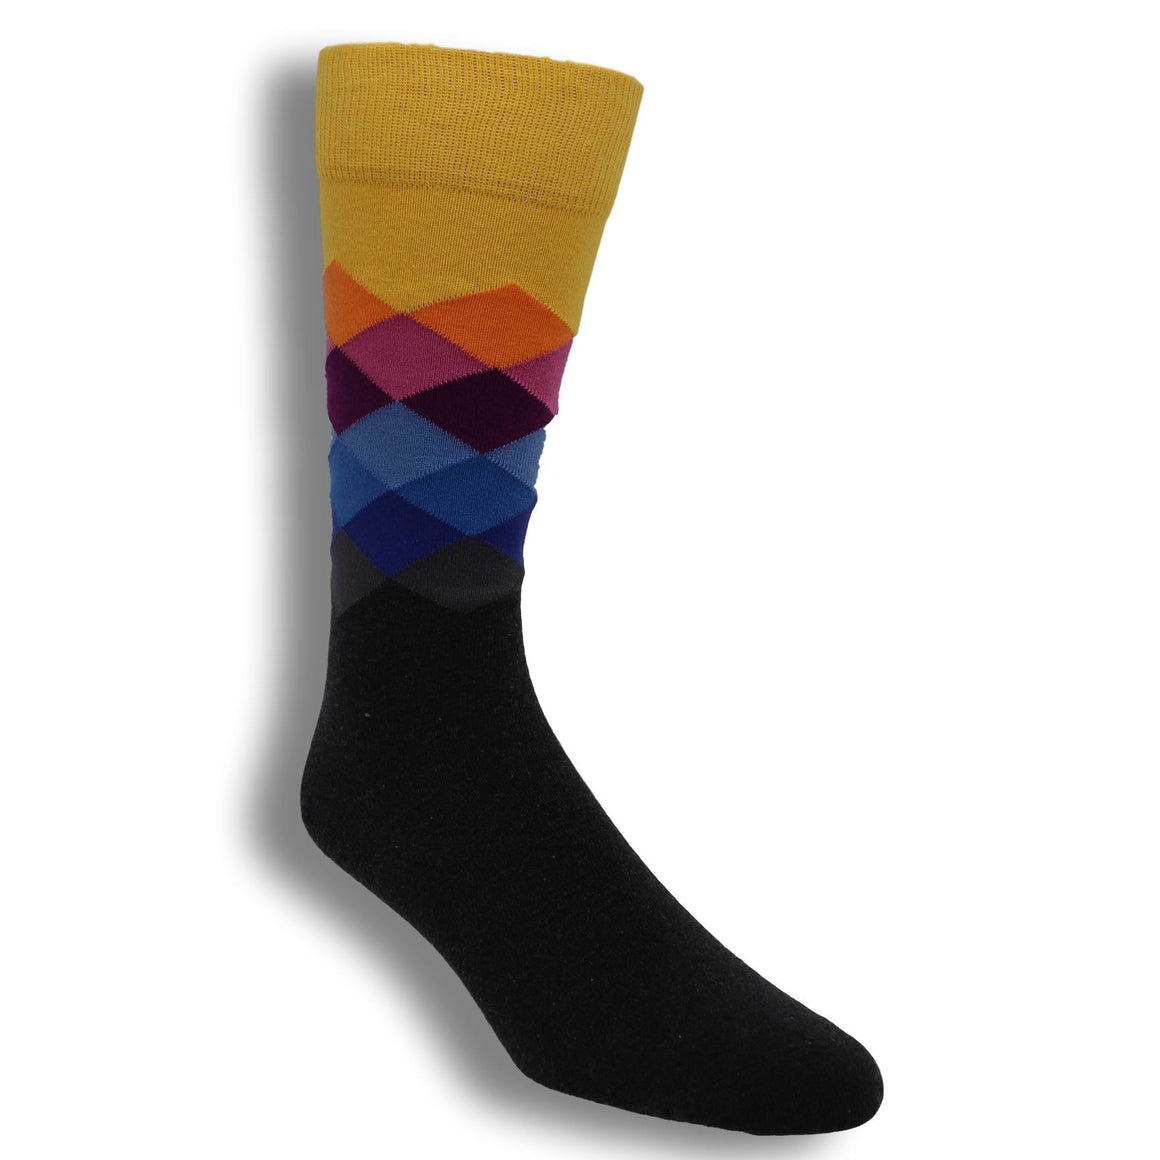 Yellow, Orange, And Blue Faded Diamond Socks By Happy Socks